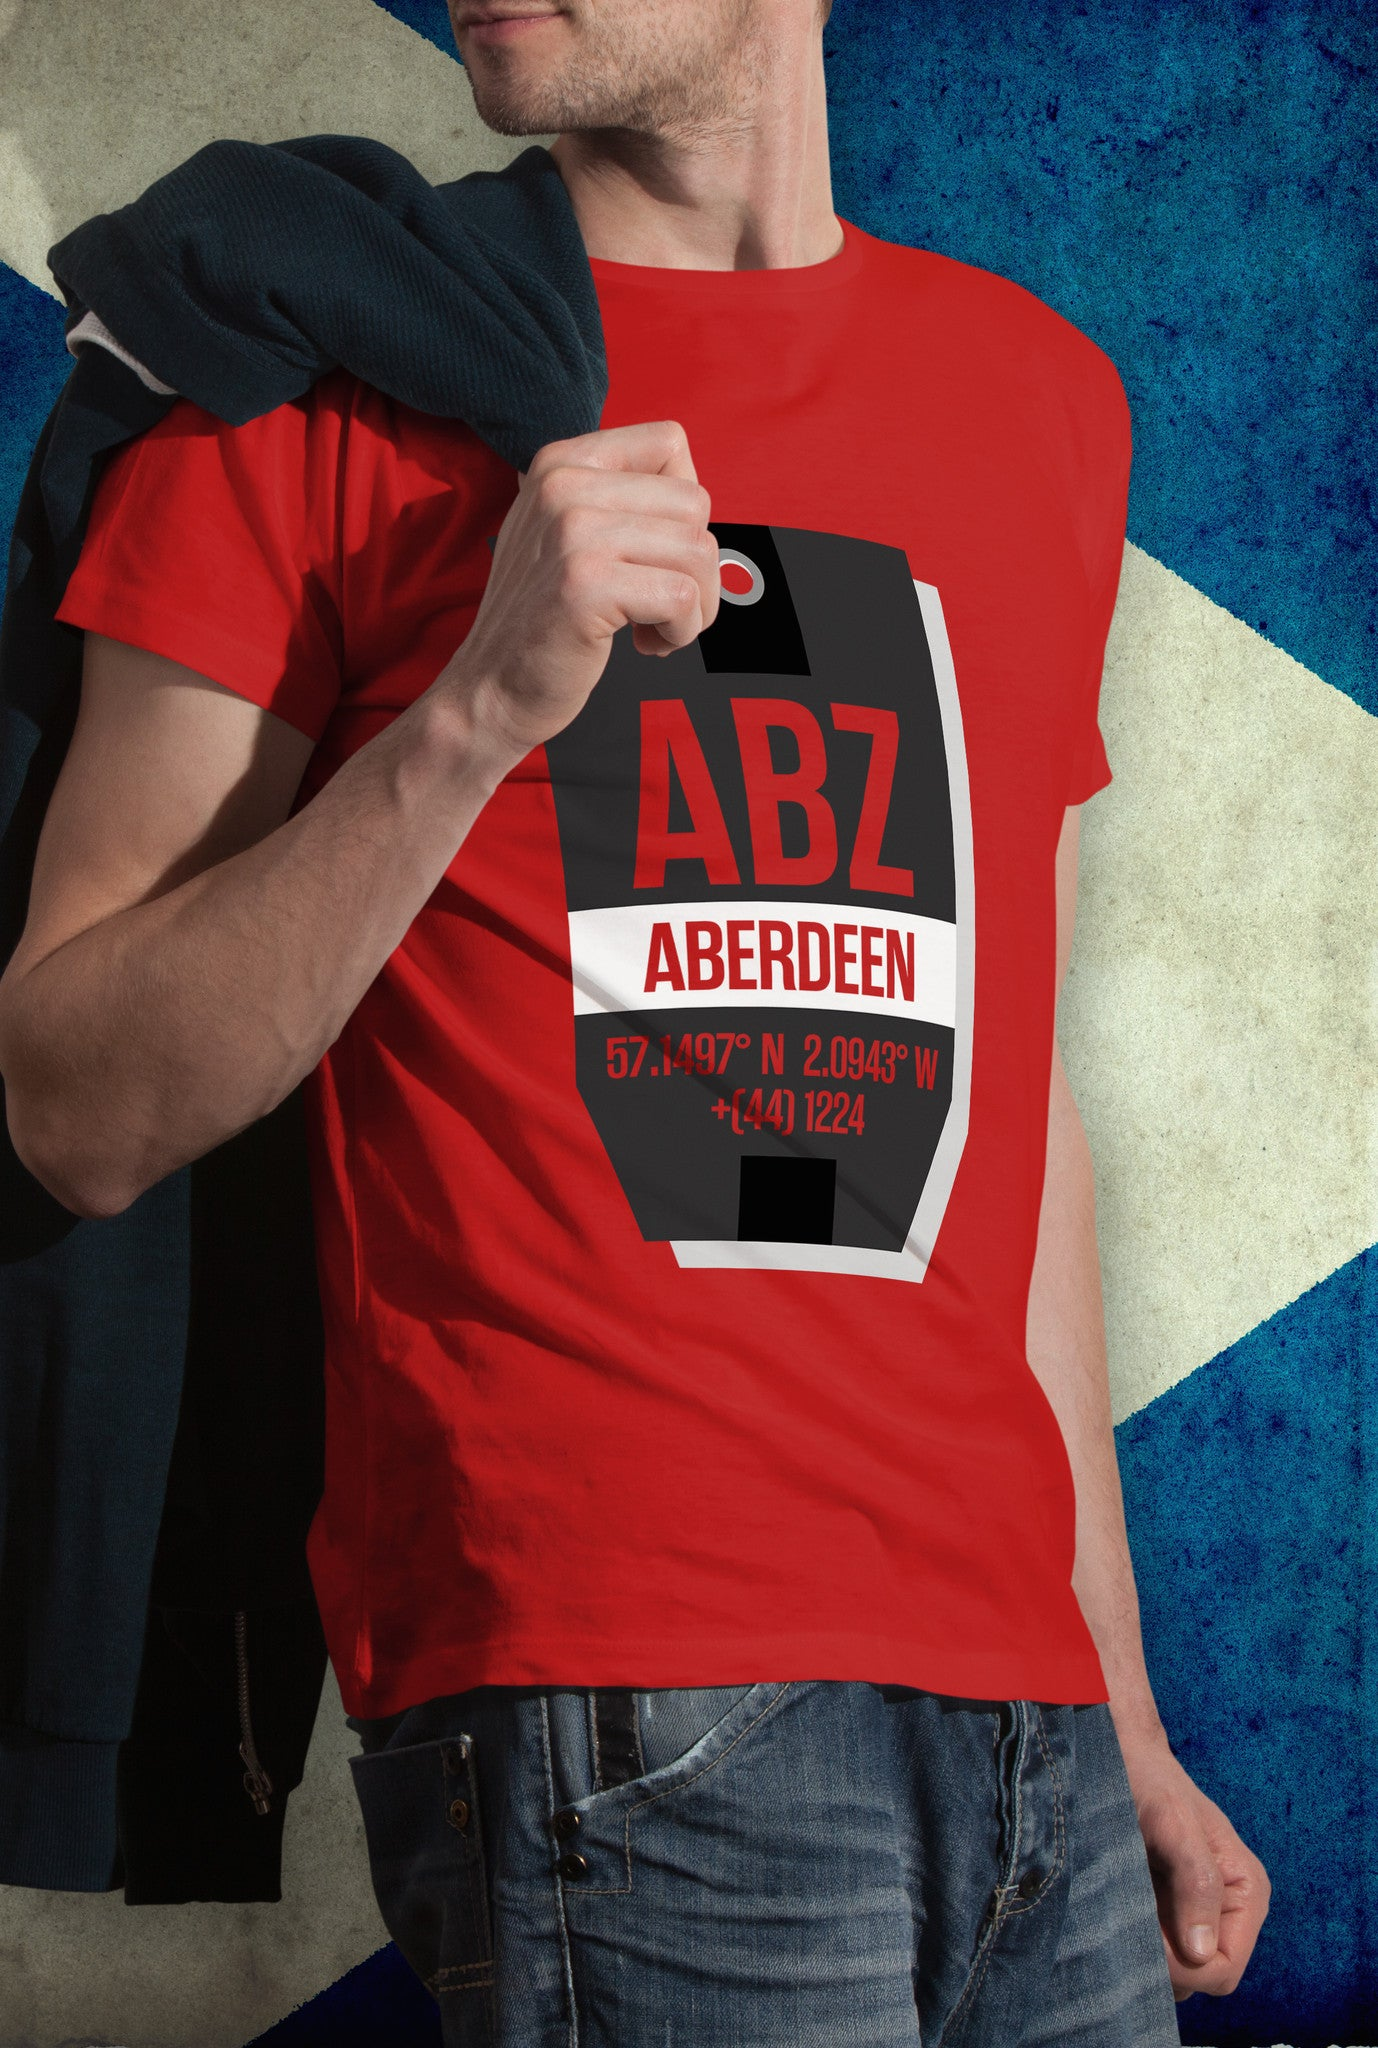 Aberdeen ABZ LABEL<p> Unisex Gildan T Shirt In White, Red & Black Custom T Shirt by Lets Get Shirty Dot Com